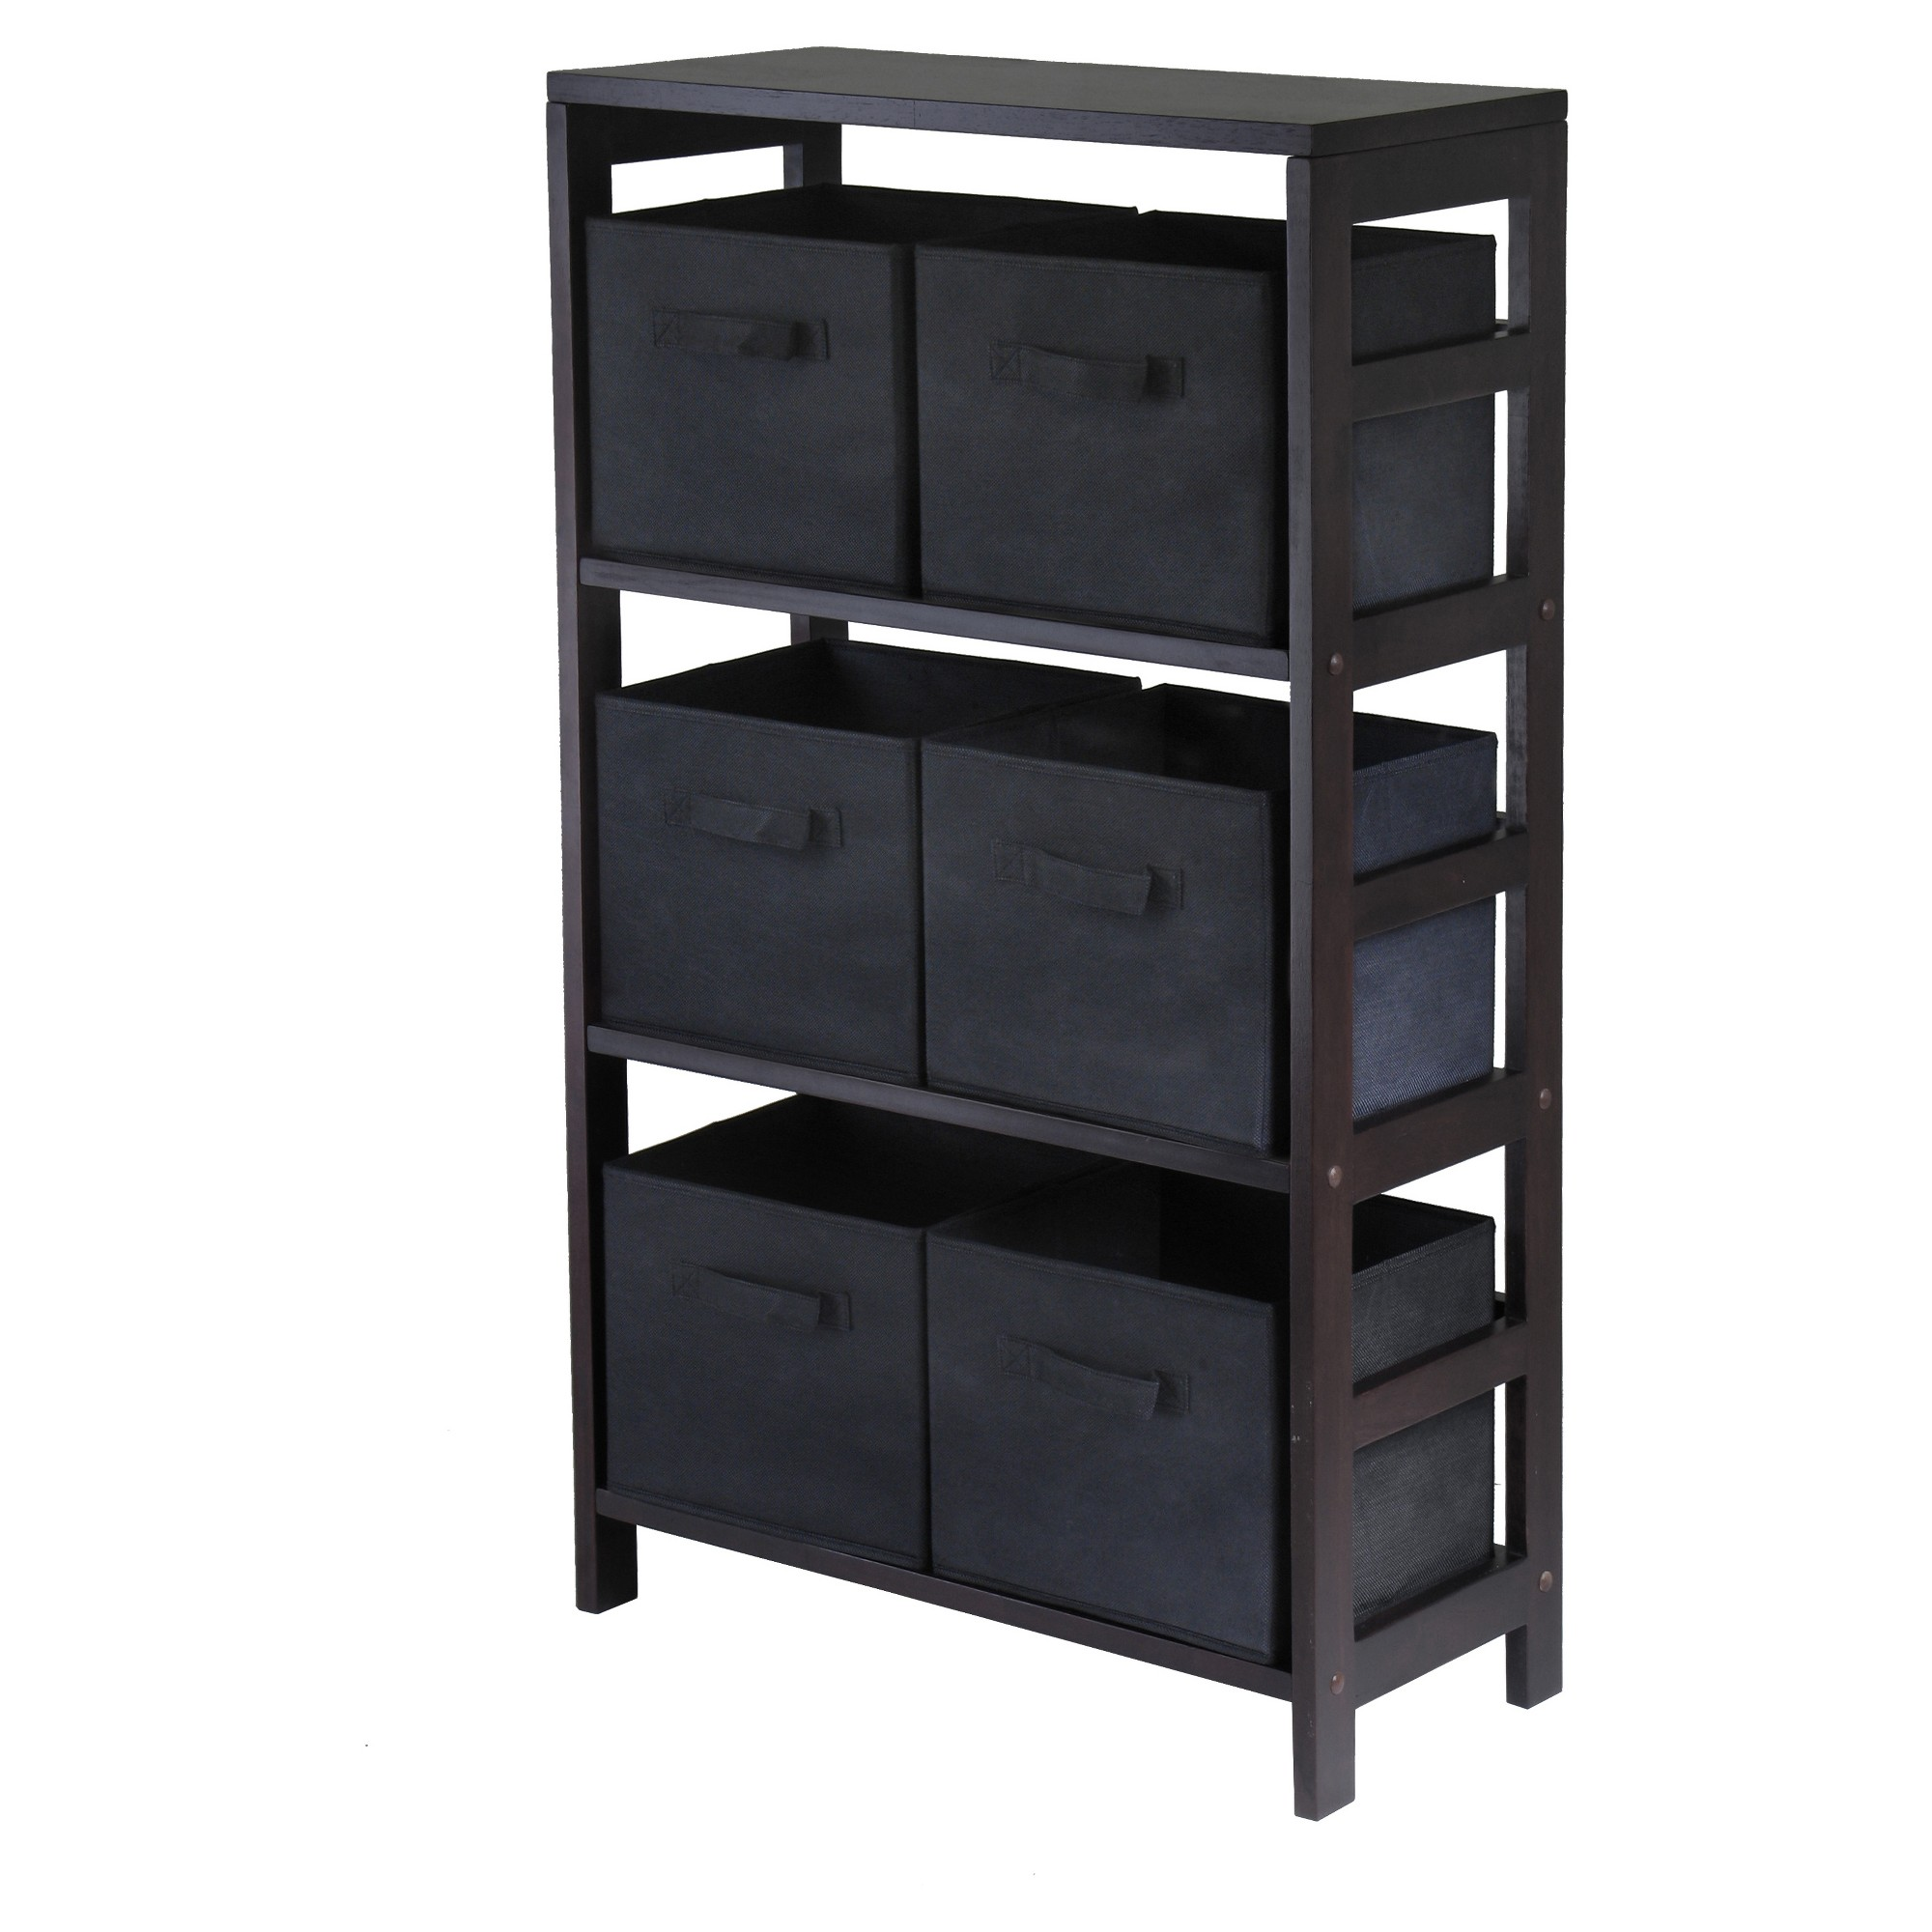 garden home today wood montego bookcase product stackable folding shelf bookshelf free shipping vida the black la barn gray natural overstock